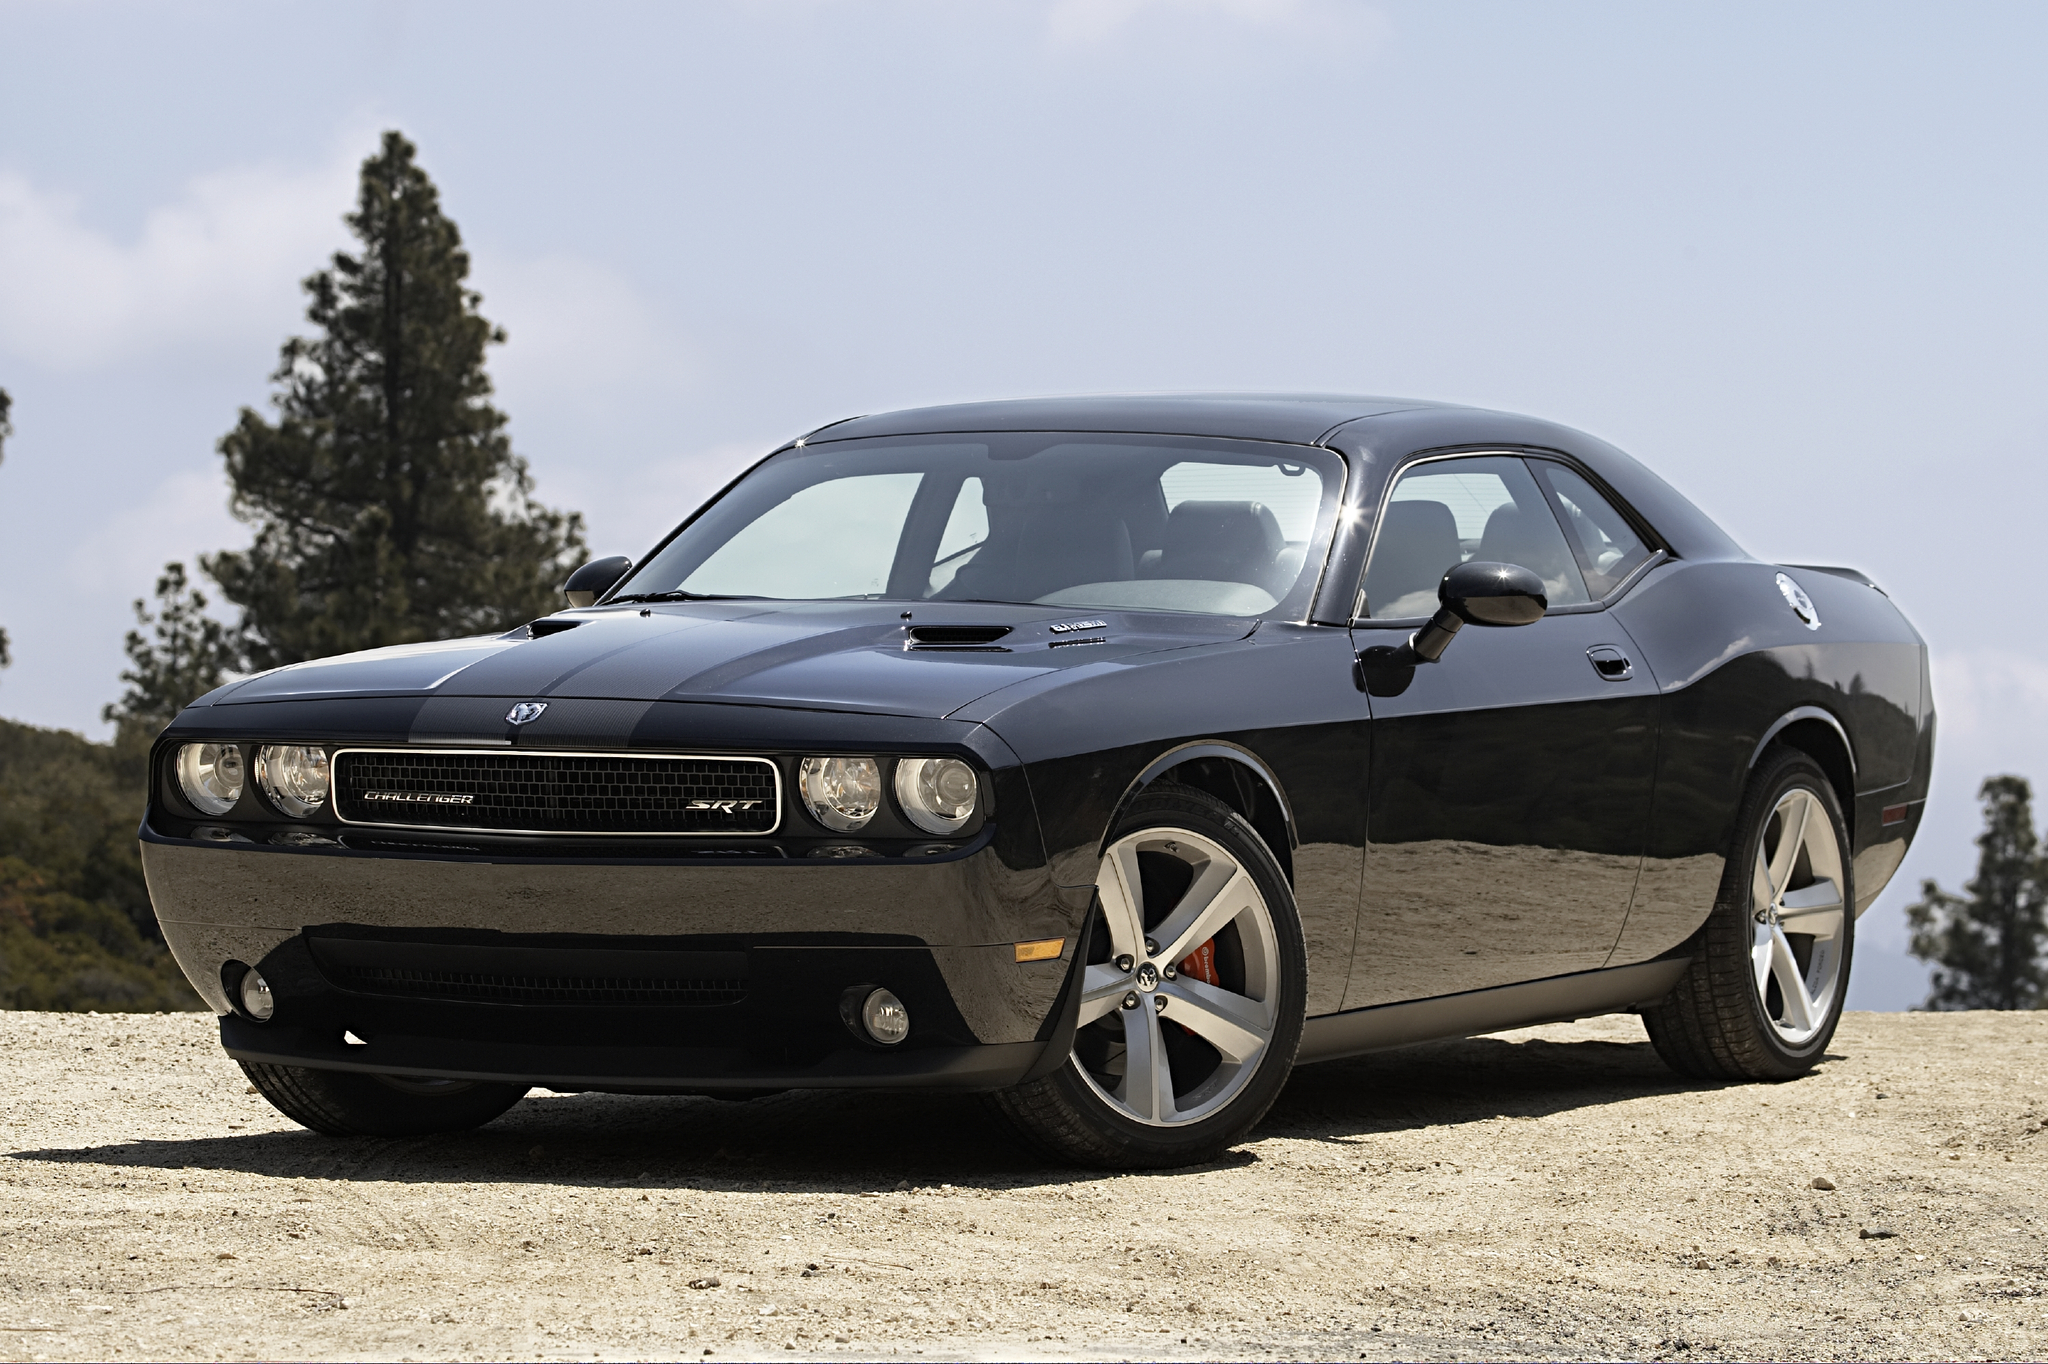 dodge challenger srt 8 2013 autos y motos taringa. Black Bedroom Furniture Sets. Home Design Ideas